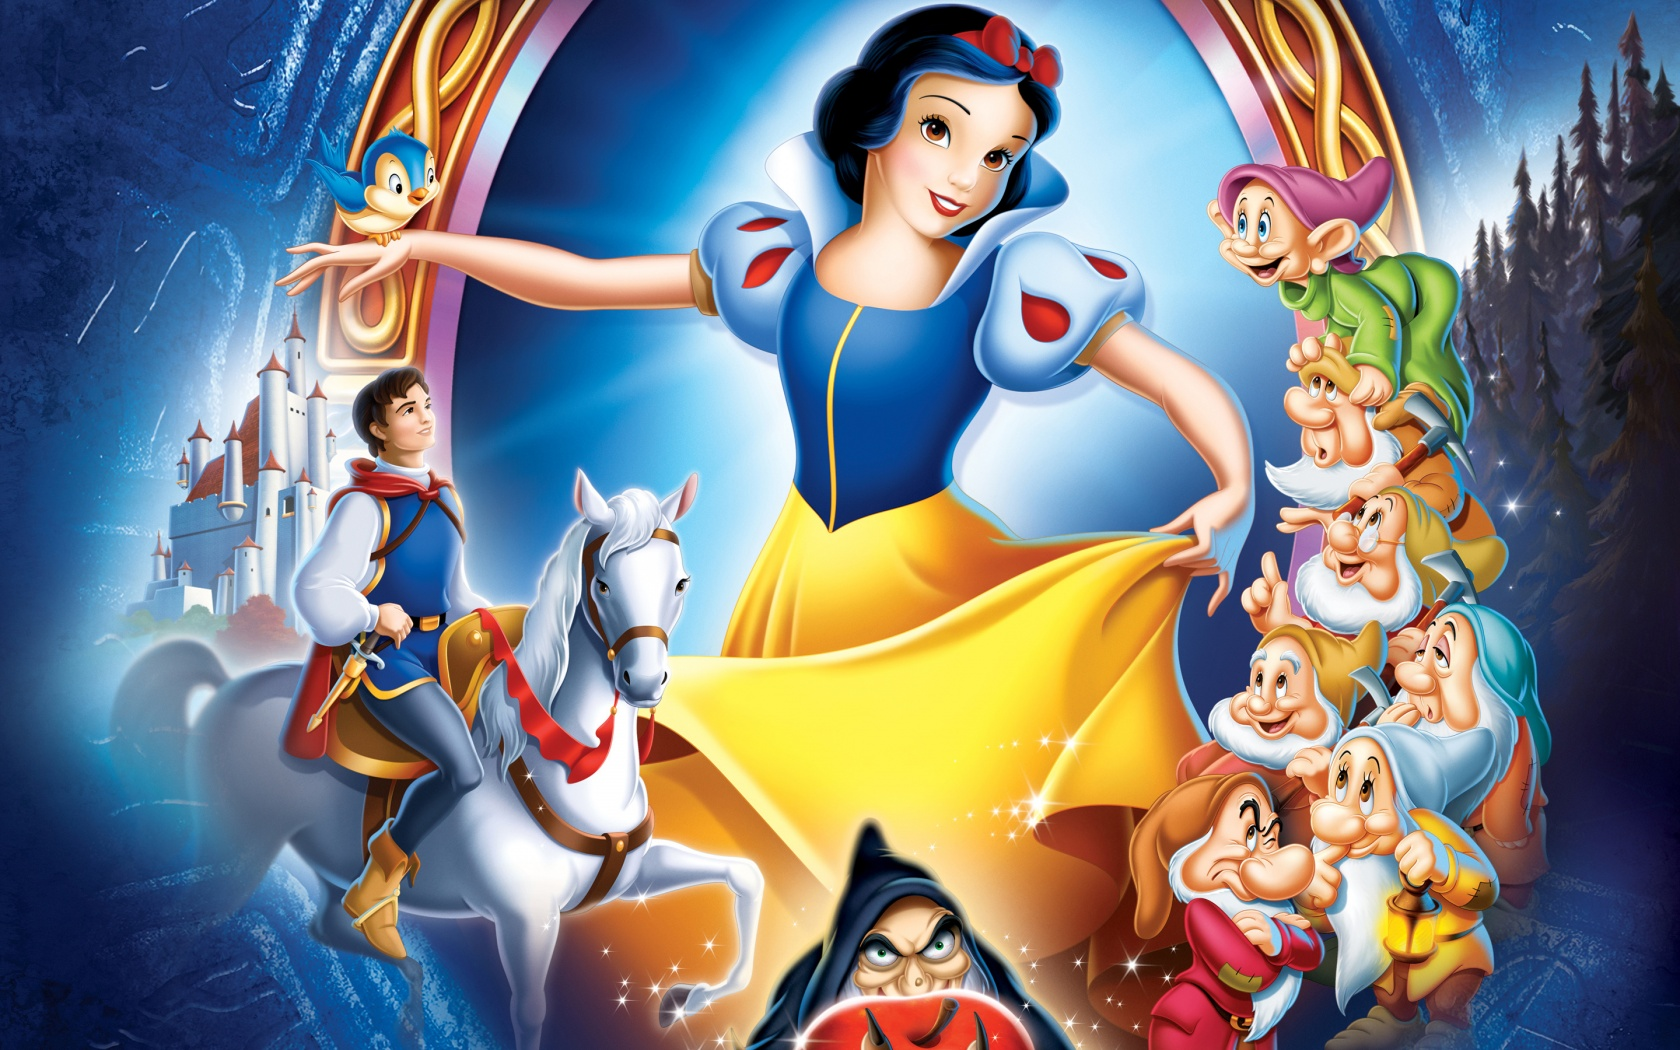 Disney Enchanted Wallpapers In Jpg Format For Free Download